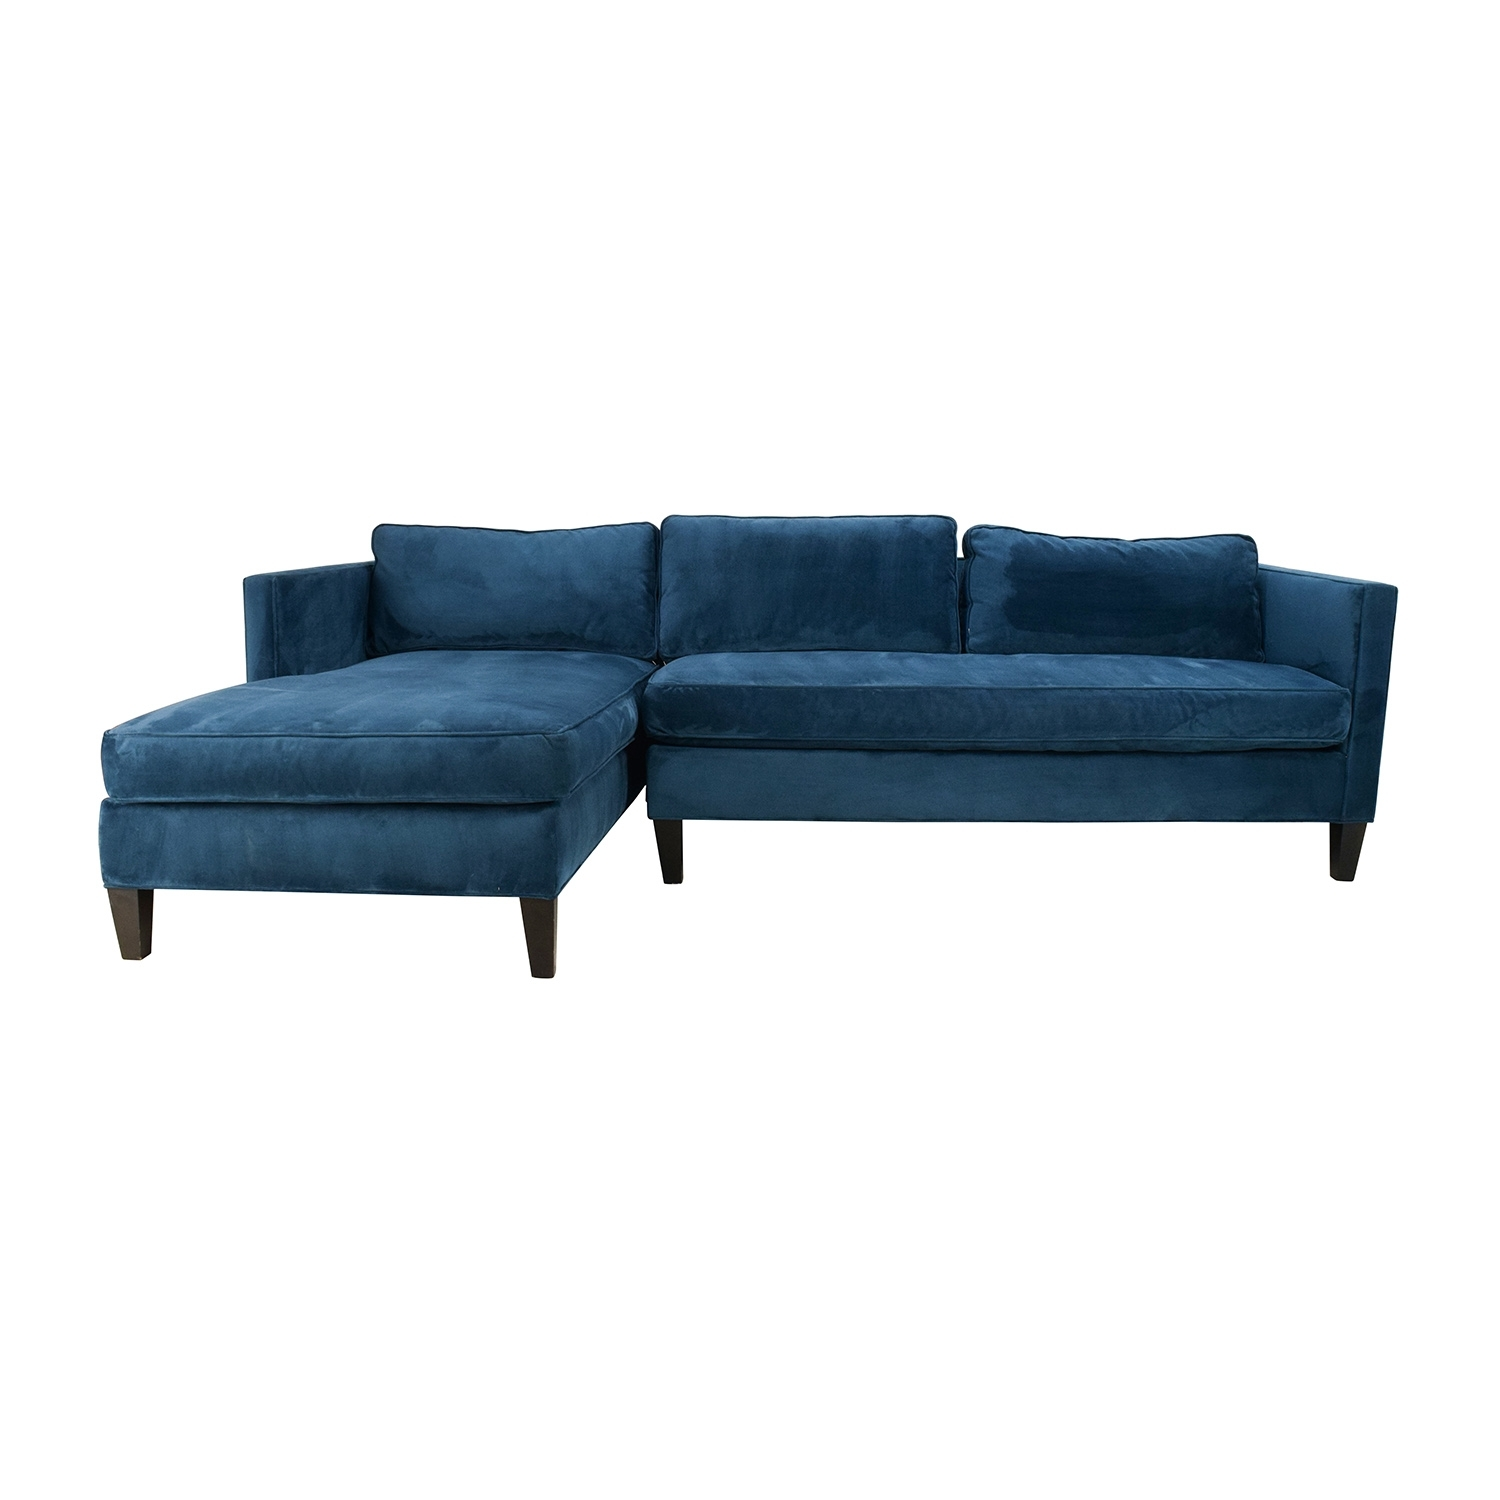 67% Off   West Elm West Elm Dunham Sectional Sofa / Sofas Throughout West Elm Sectional Sofas (Photo 9 of 10)